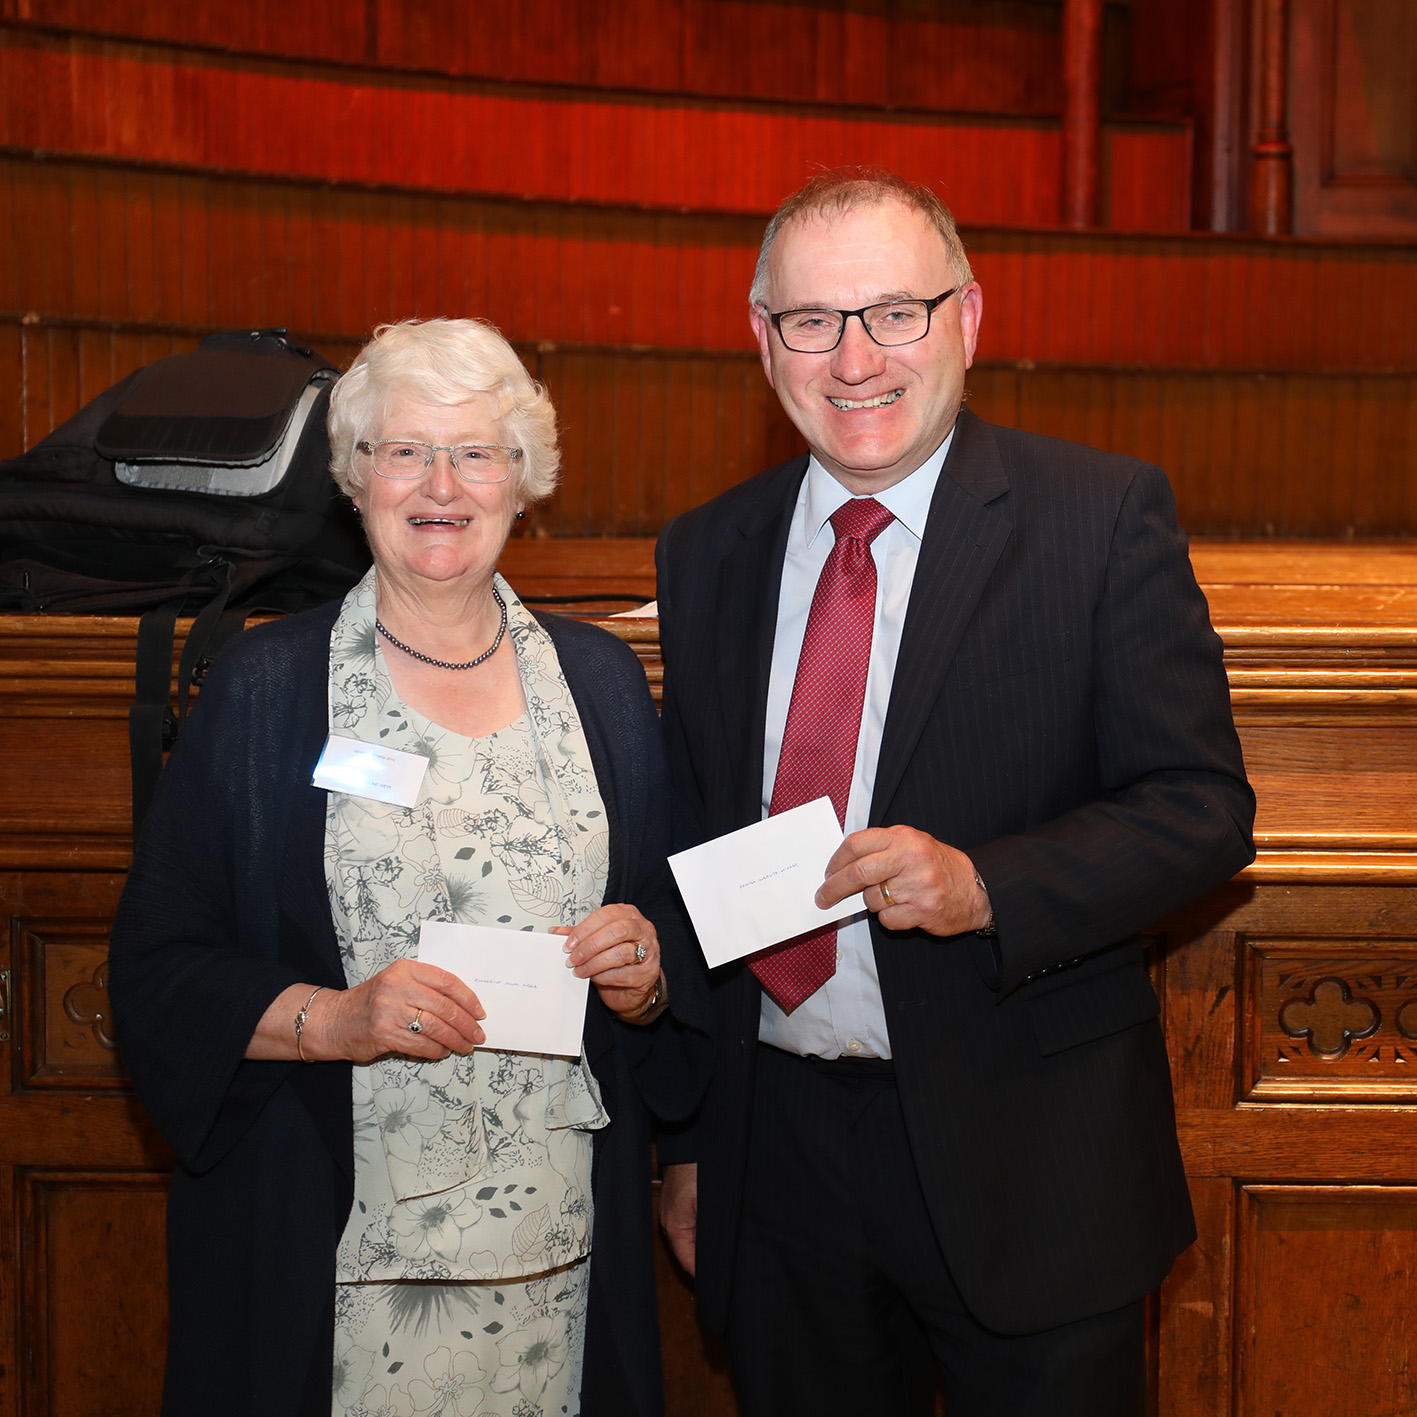 Jacqueline Weir and David Holmes with their prizes